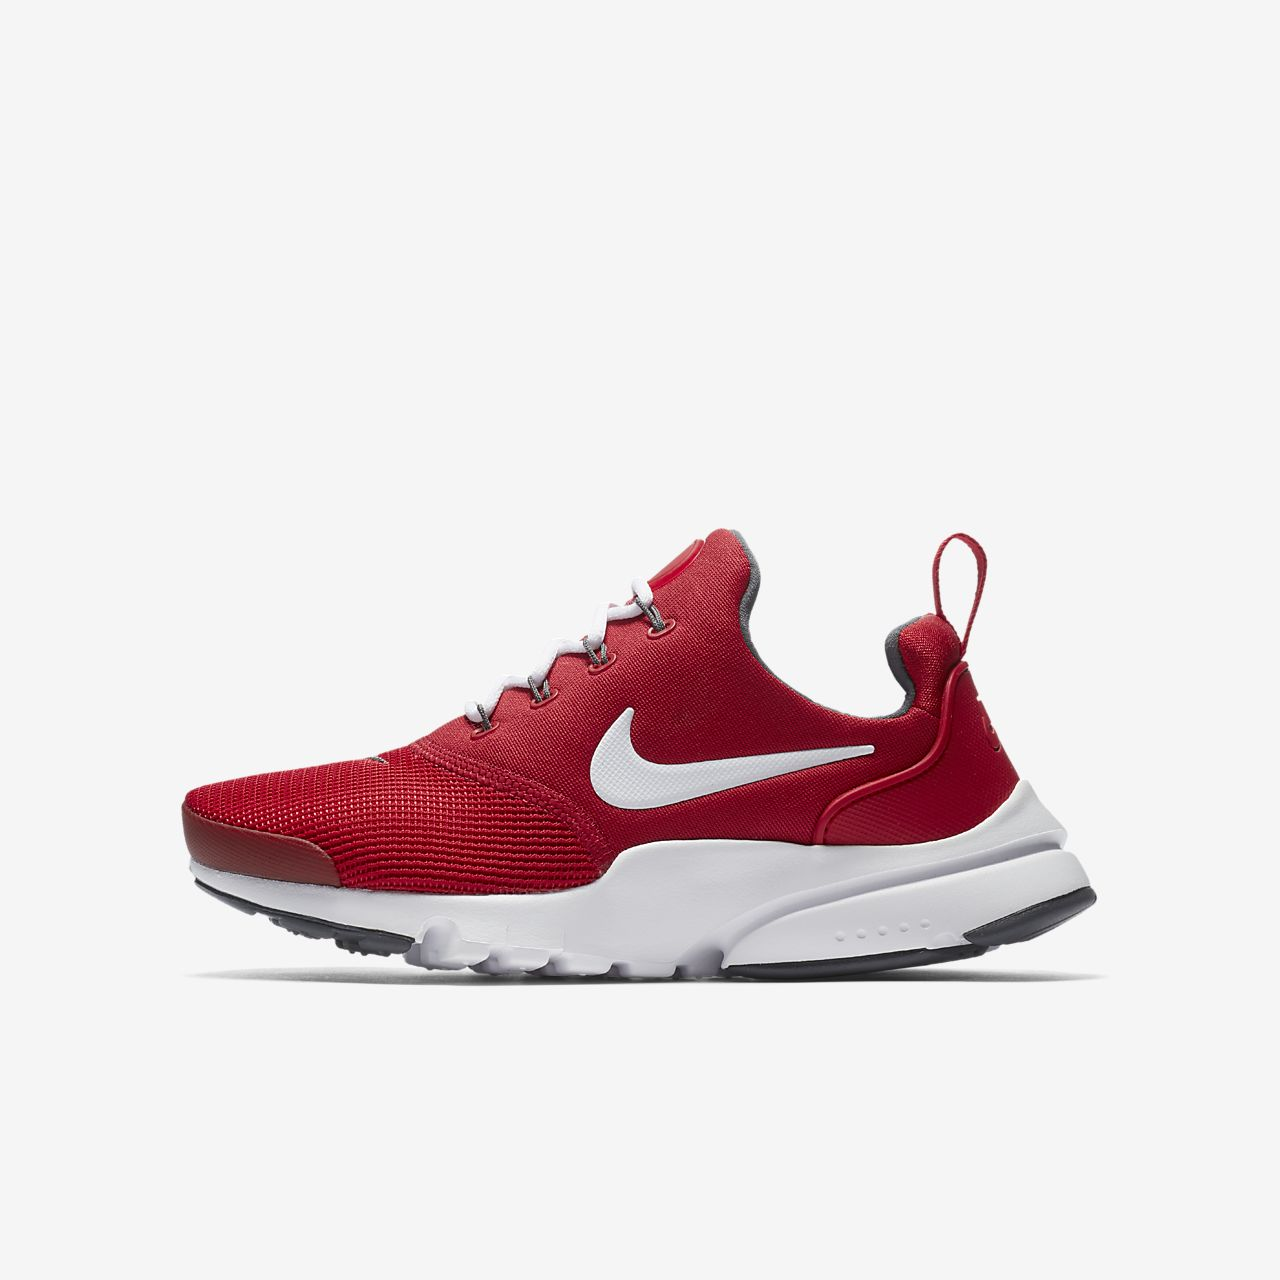 Nike Presto Fly  - Boy Sneakers - Red/White/Grey